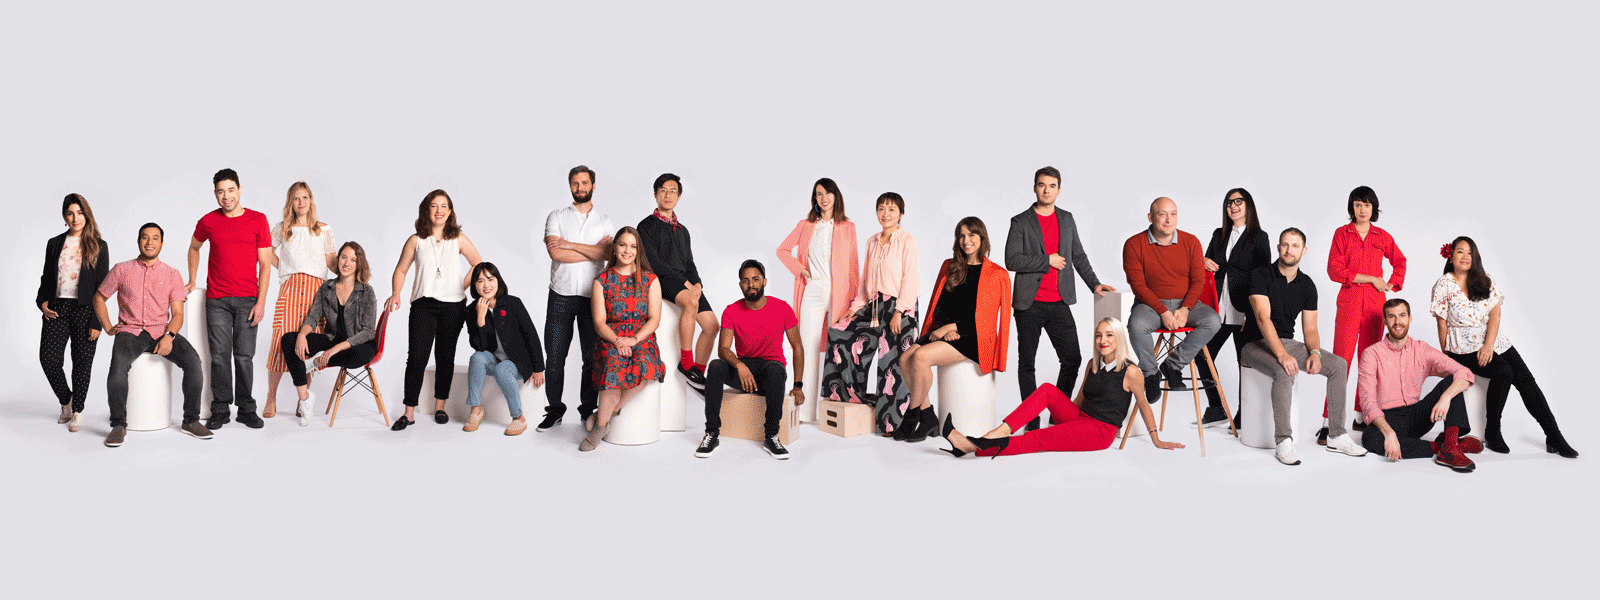 A large group studio photo of the Nickelodeon creative team wearing causal clothes with color pops of the Nickelodeon orange.